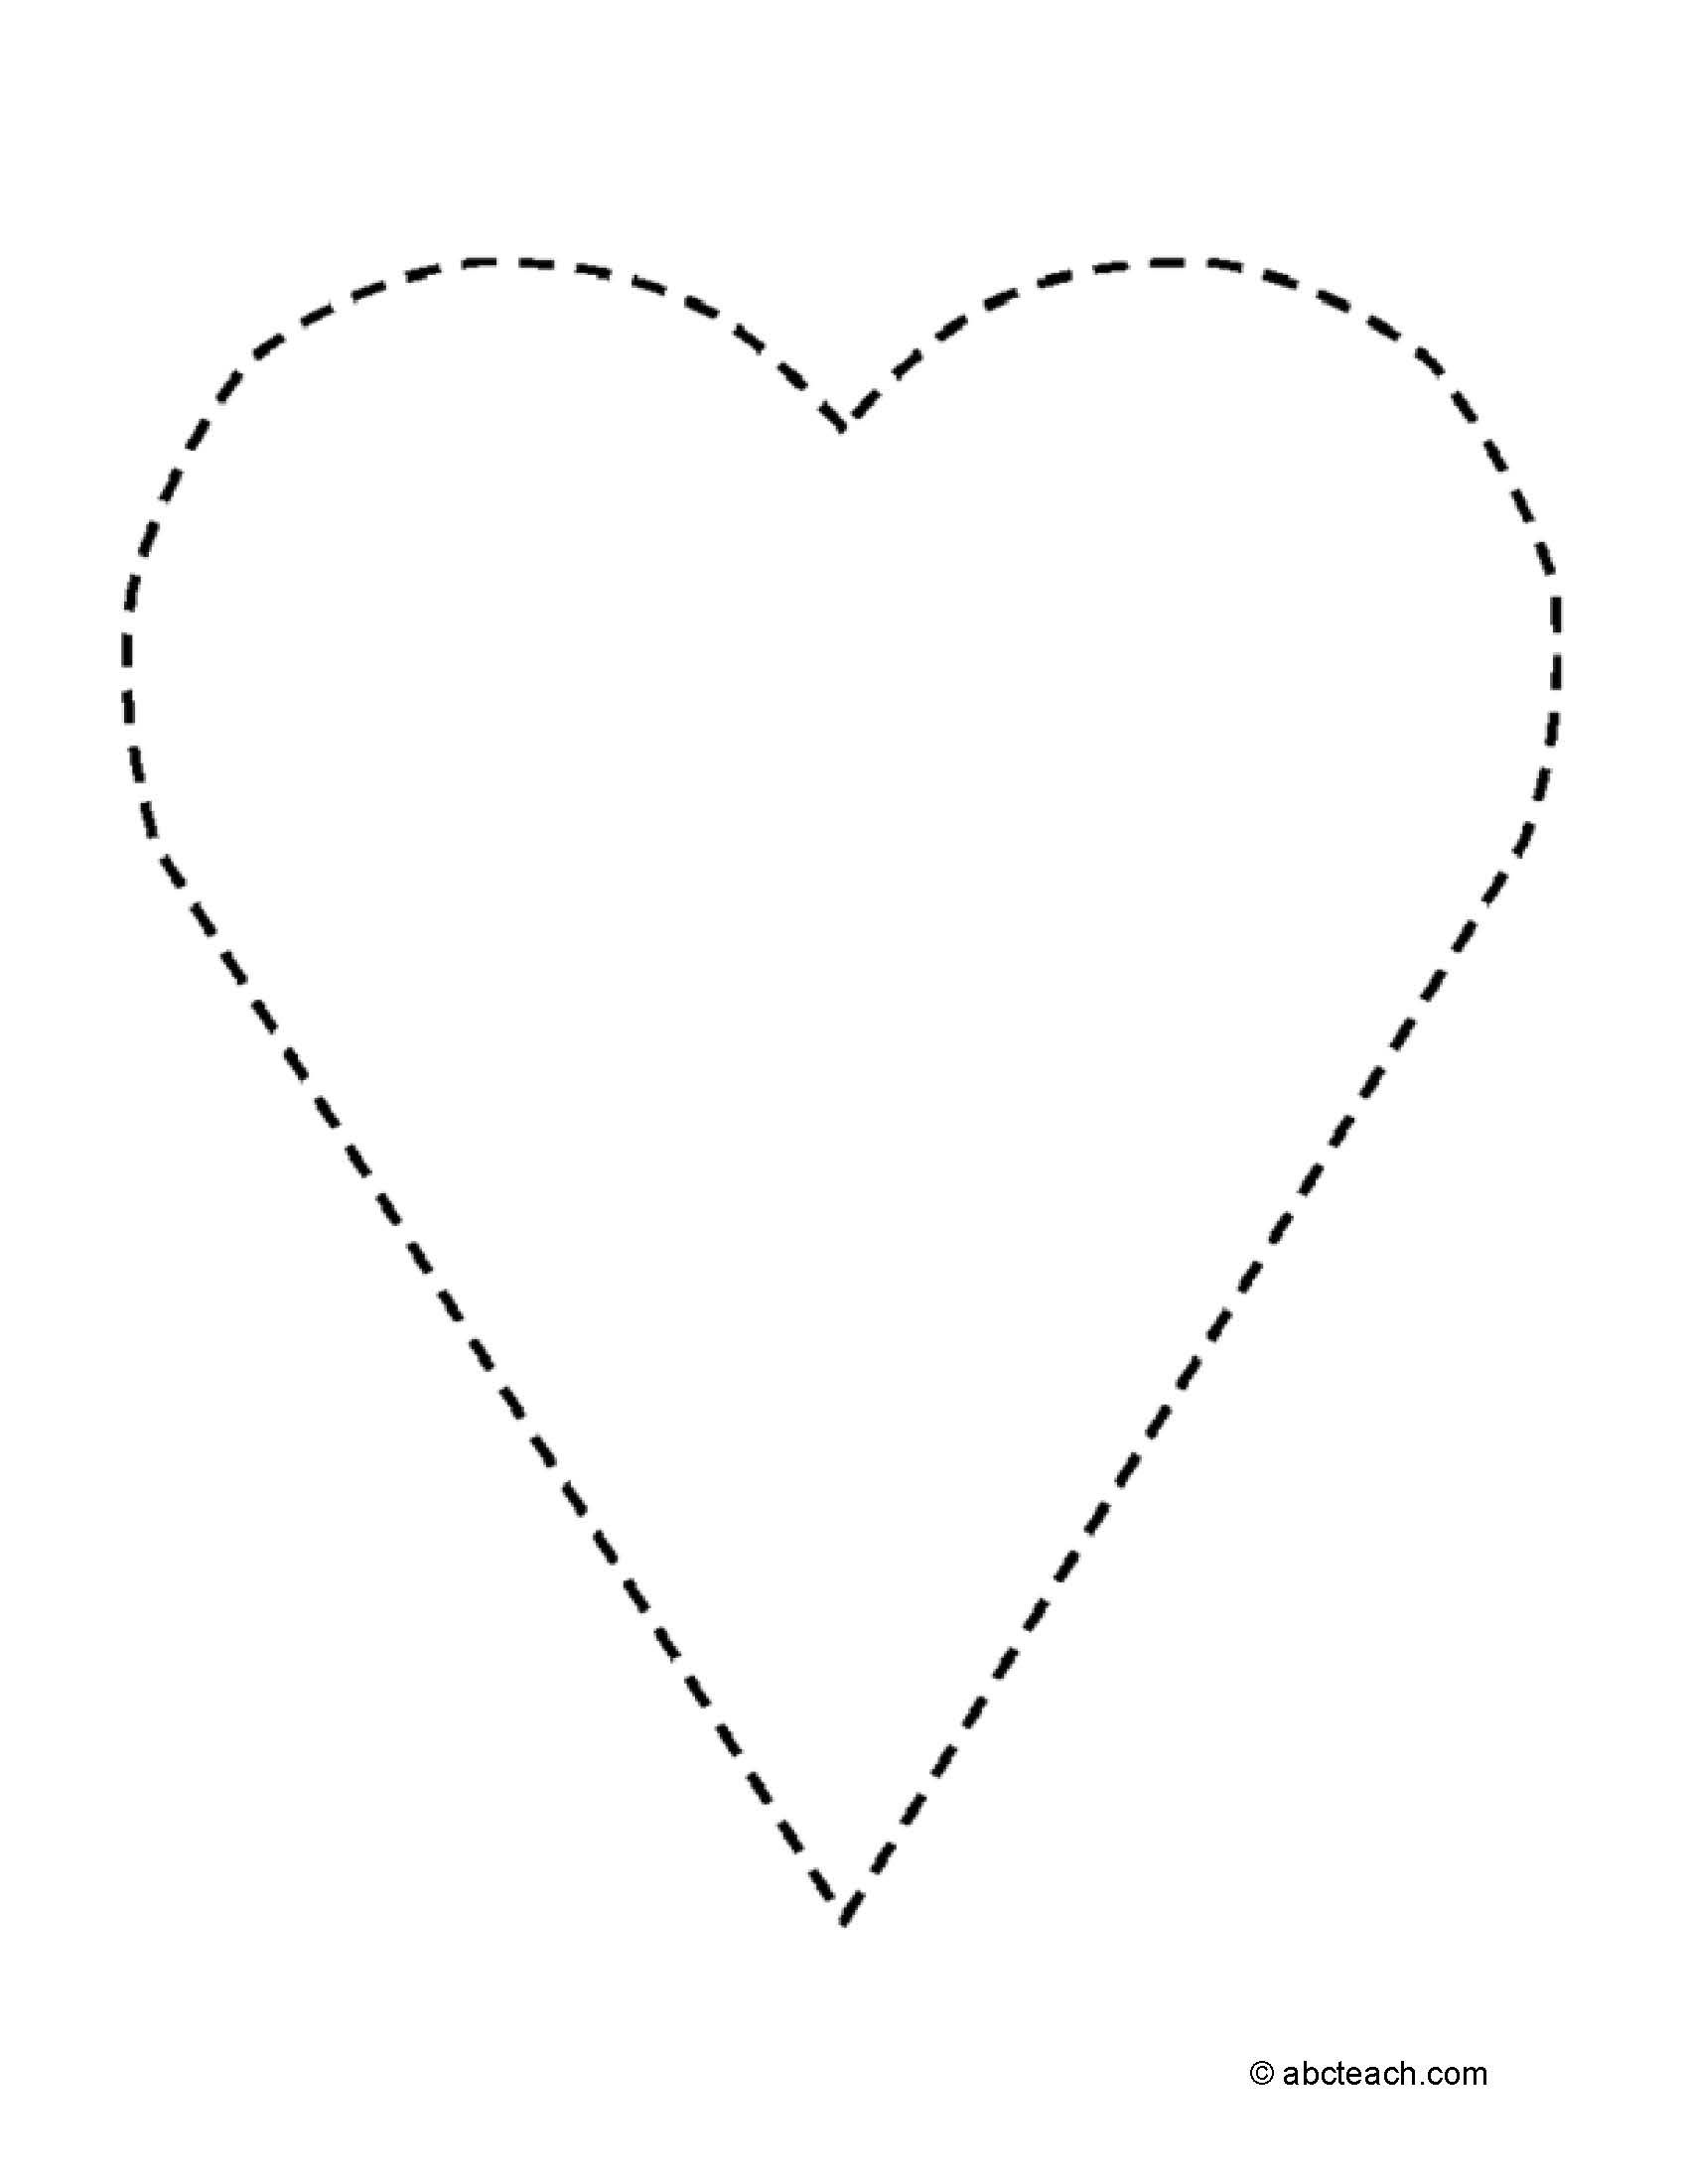 Tracing Hearts Shape Worksheet